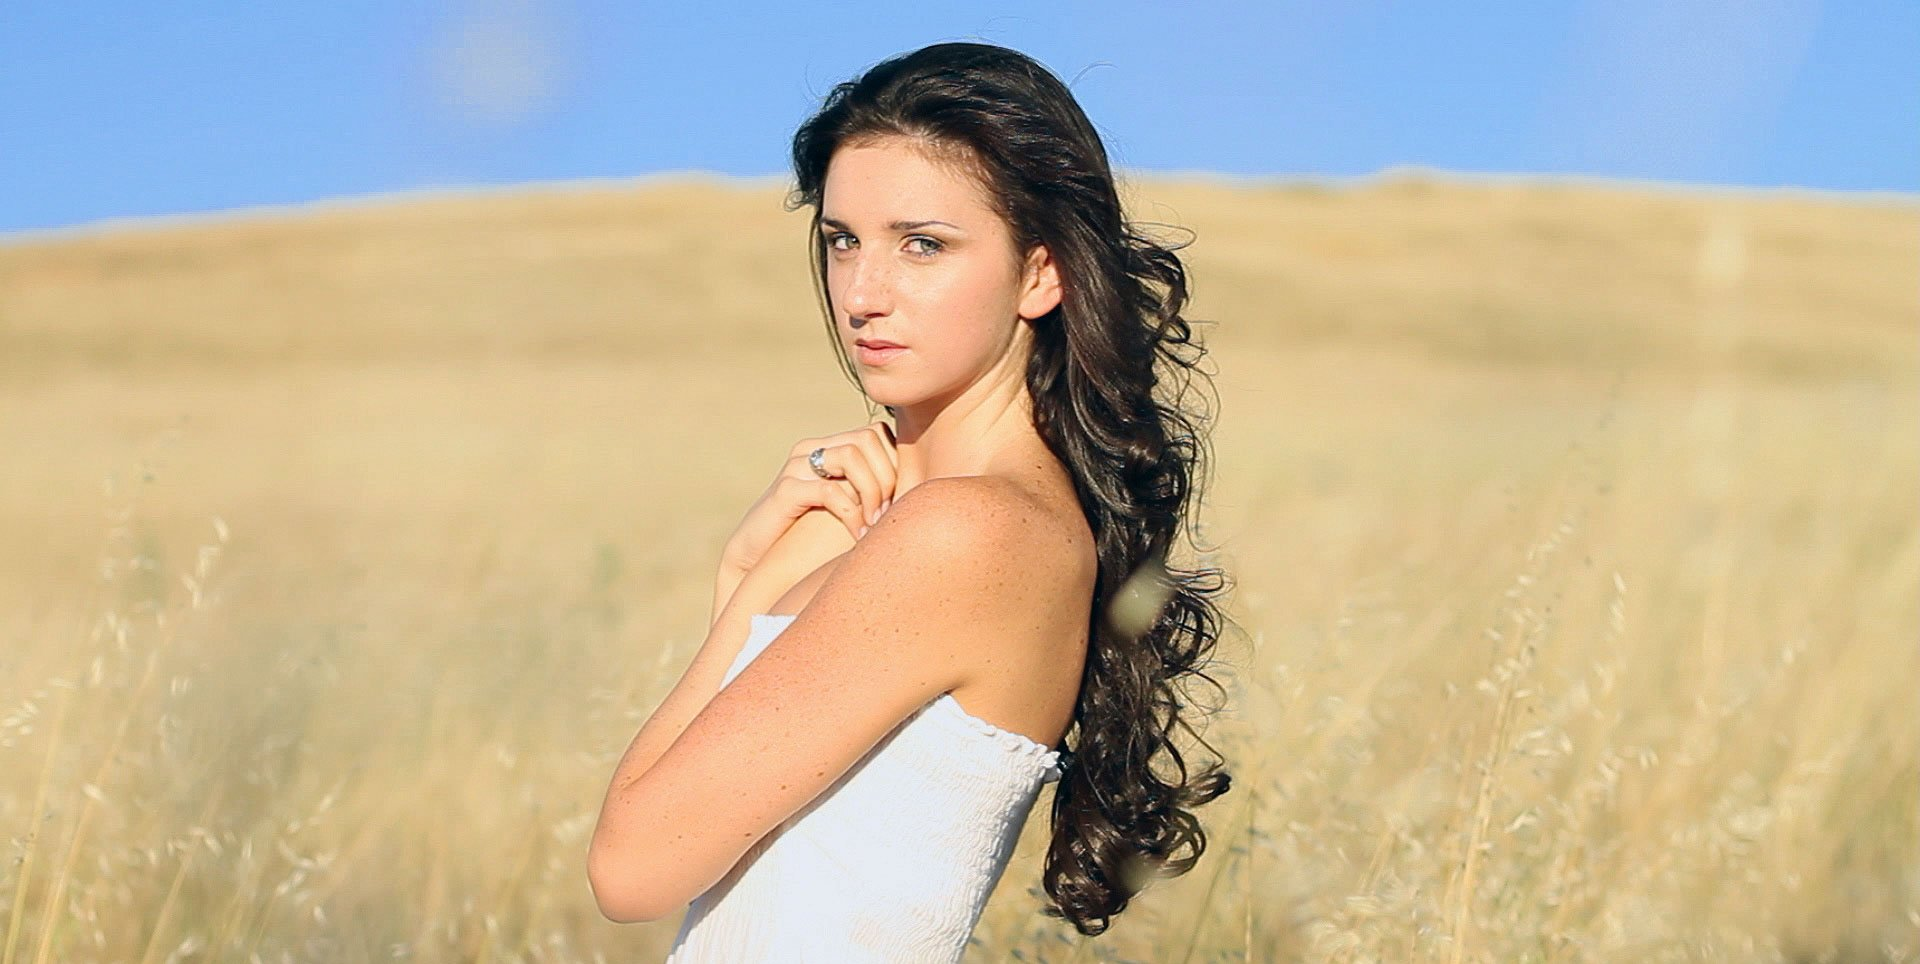 Promotional-Video-Thumbnail-of-Clinique-Happy actress in golden pasture field